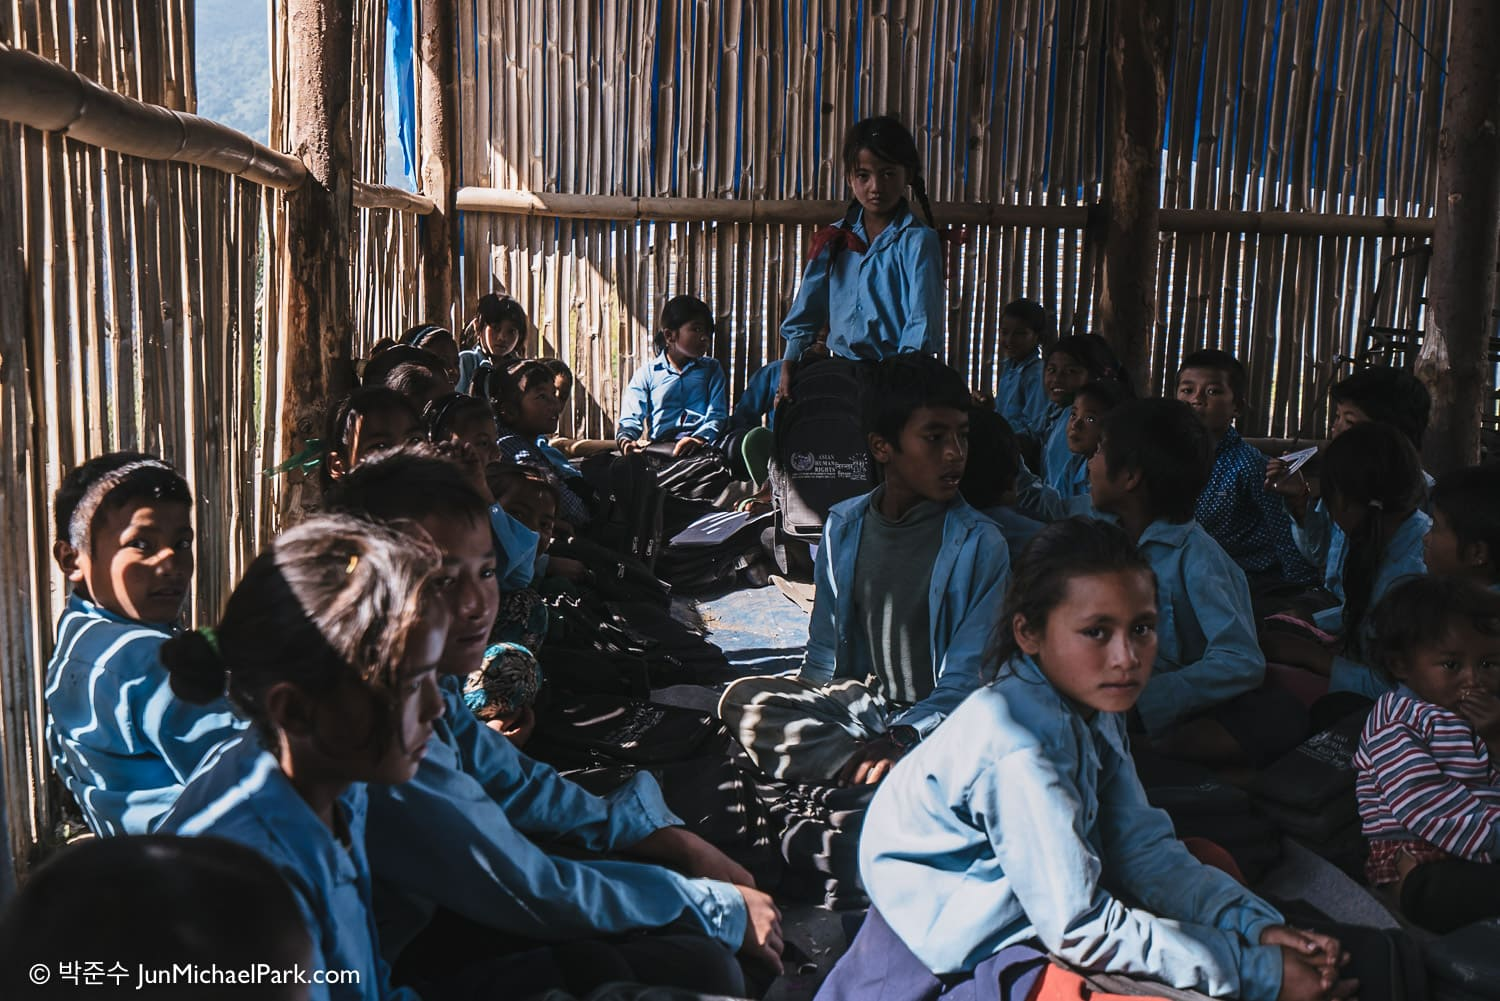 Students wait for visitors in a classroom made of bamboo tree and tarpaulin  canopy during a recess at Mangal Bhairav Primary School on a mountain top, Katarche, Syaule, Sindhupalchok District, Nepal. 04.11.15